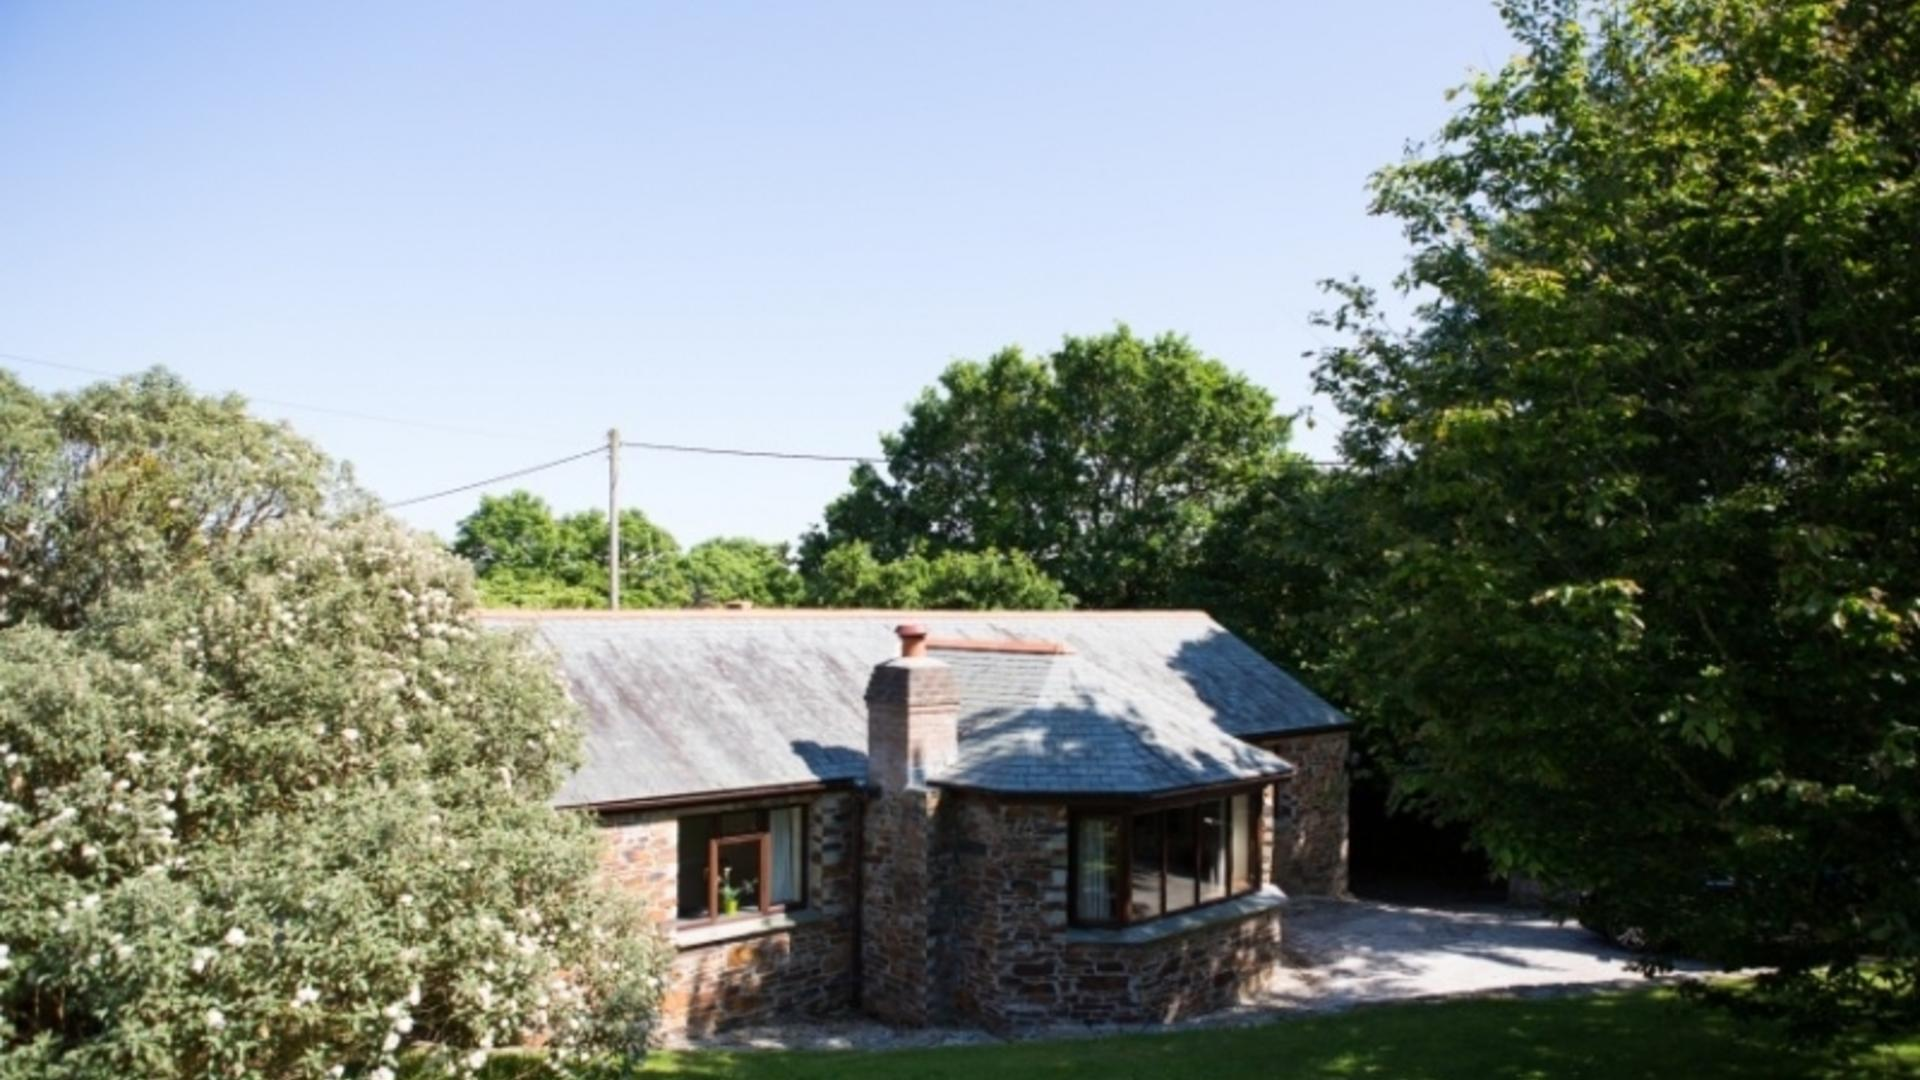 4 Bedroom Private cottage/shared facilities in Cornwall, United Kingdom